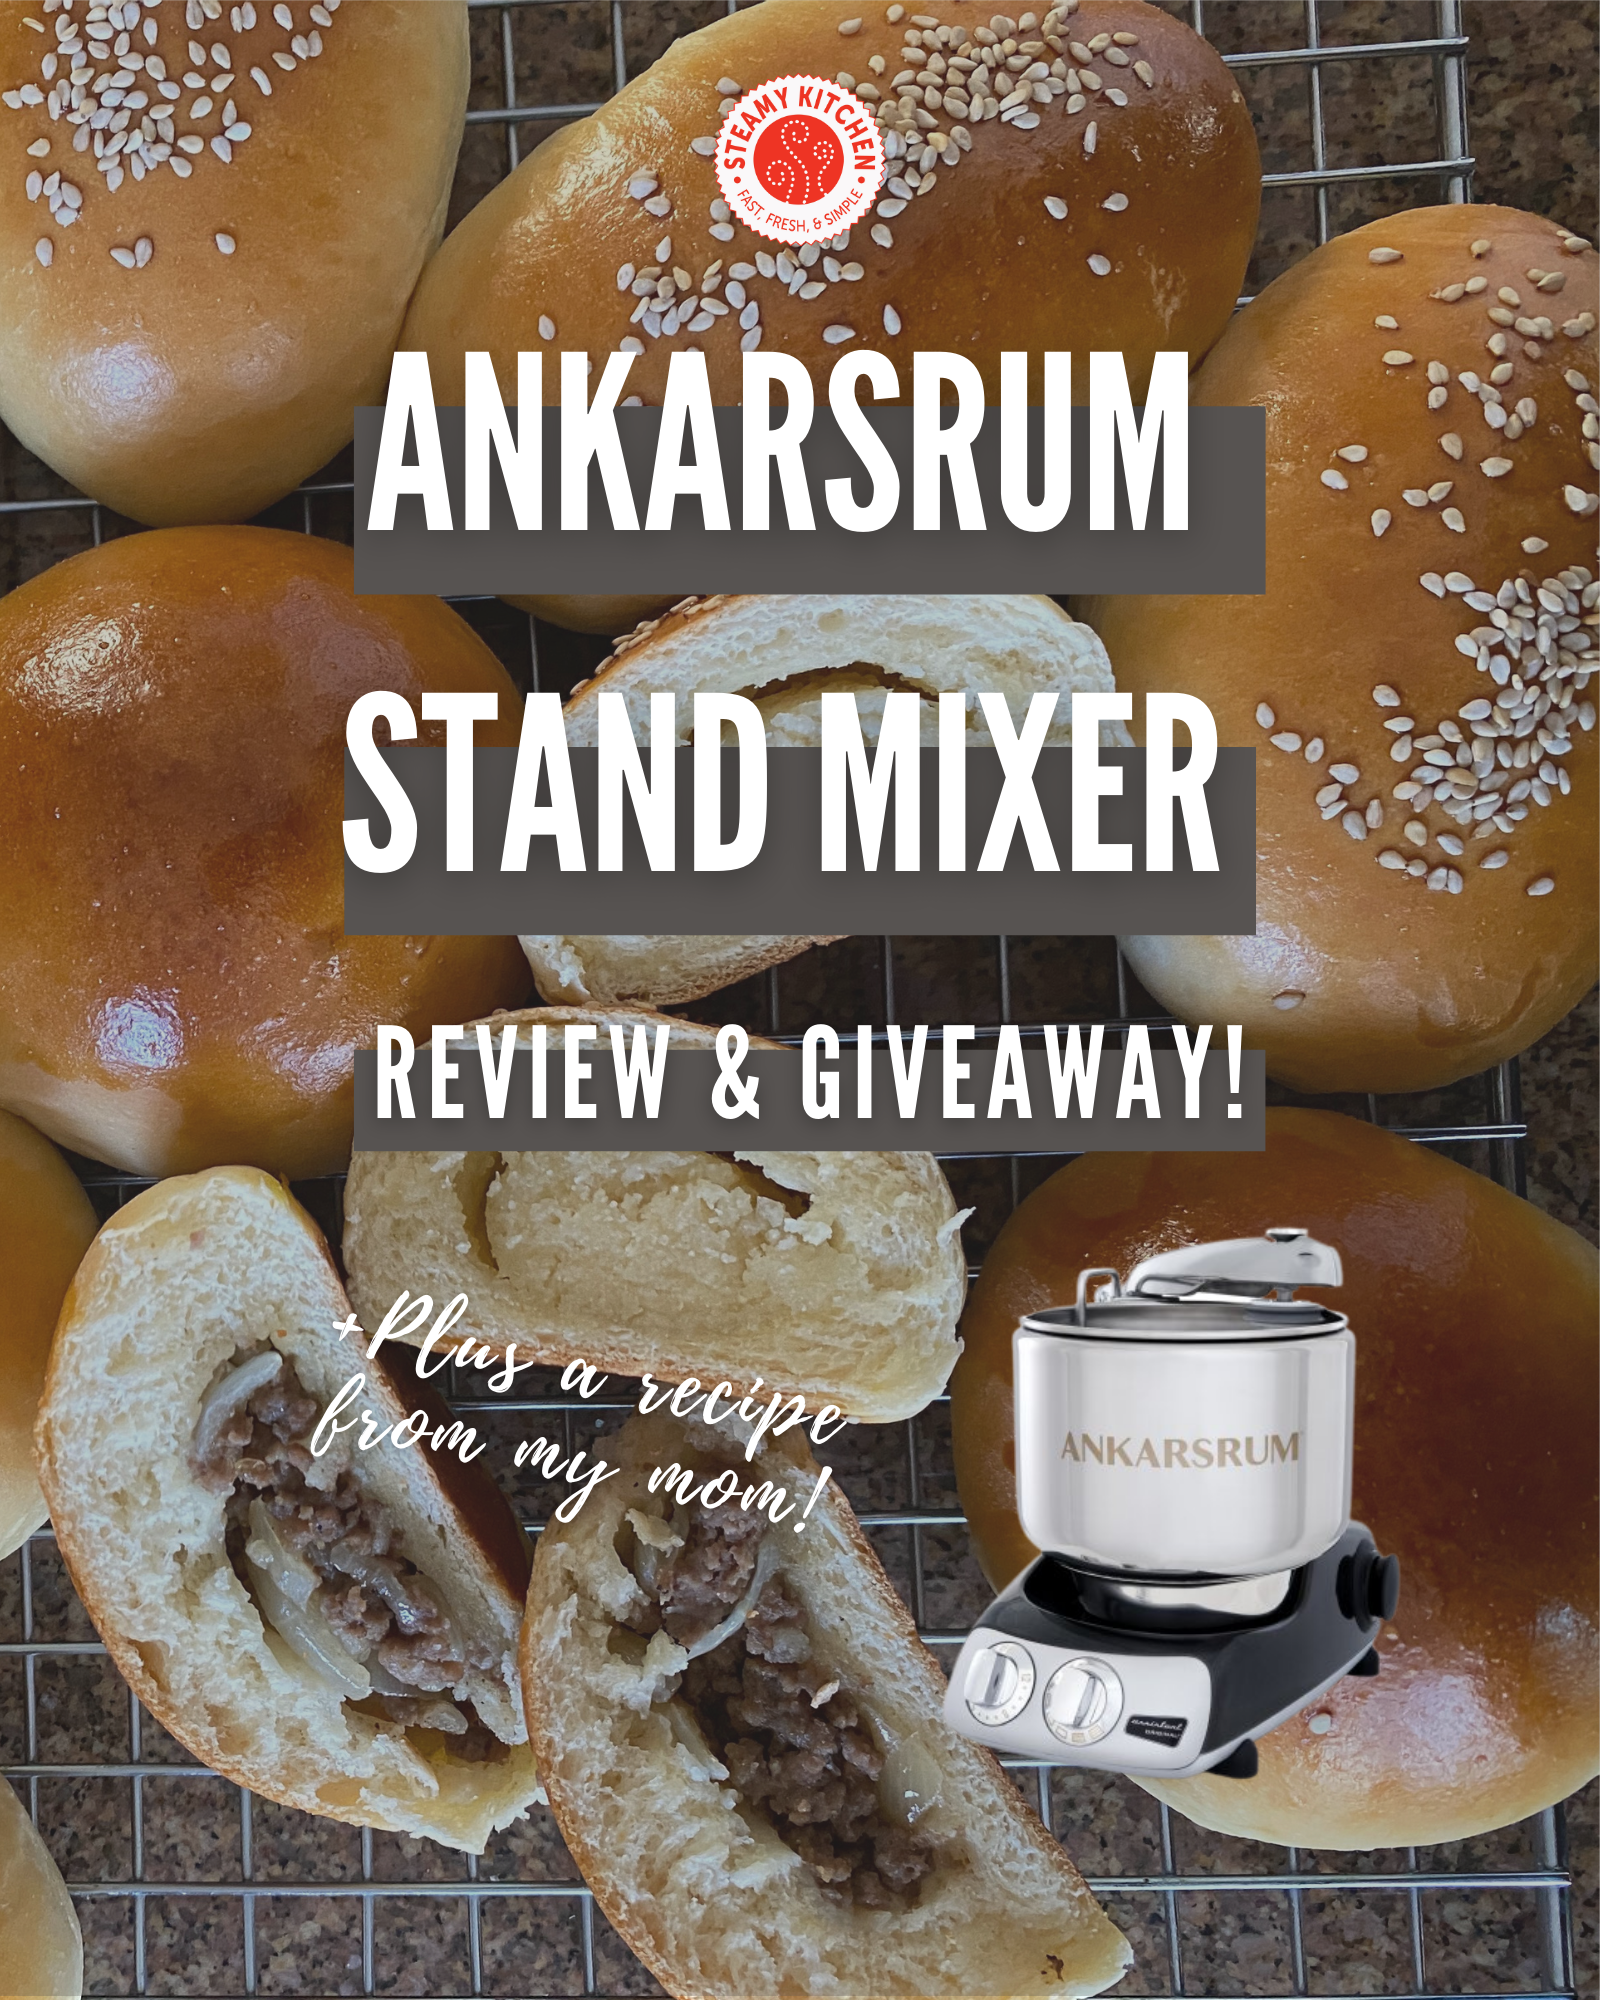 Ankarsrum Assistent Original Stand Mixer Review and GiveawayEnds in 62 days.